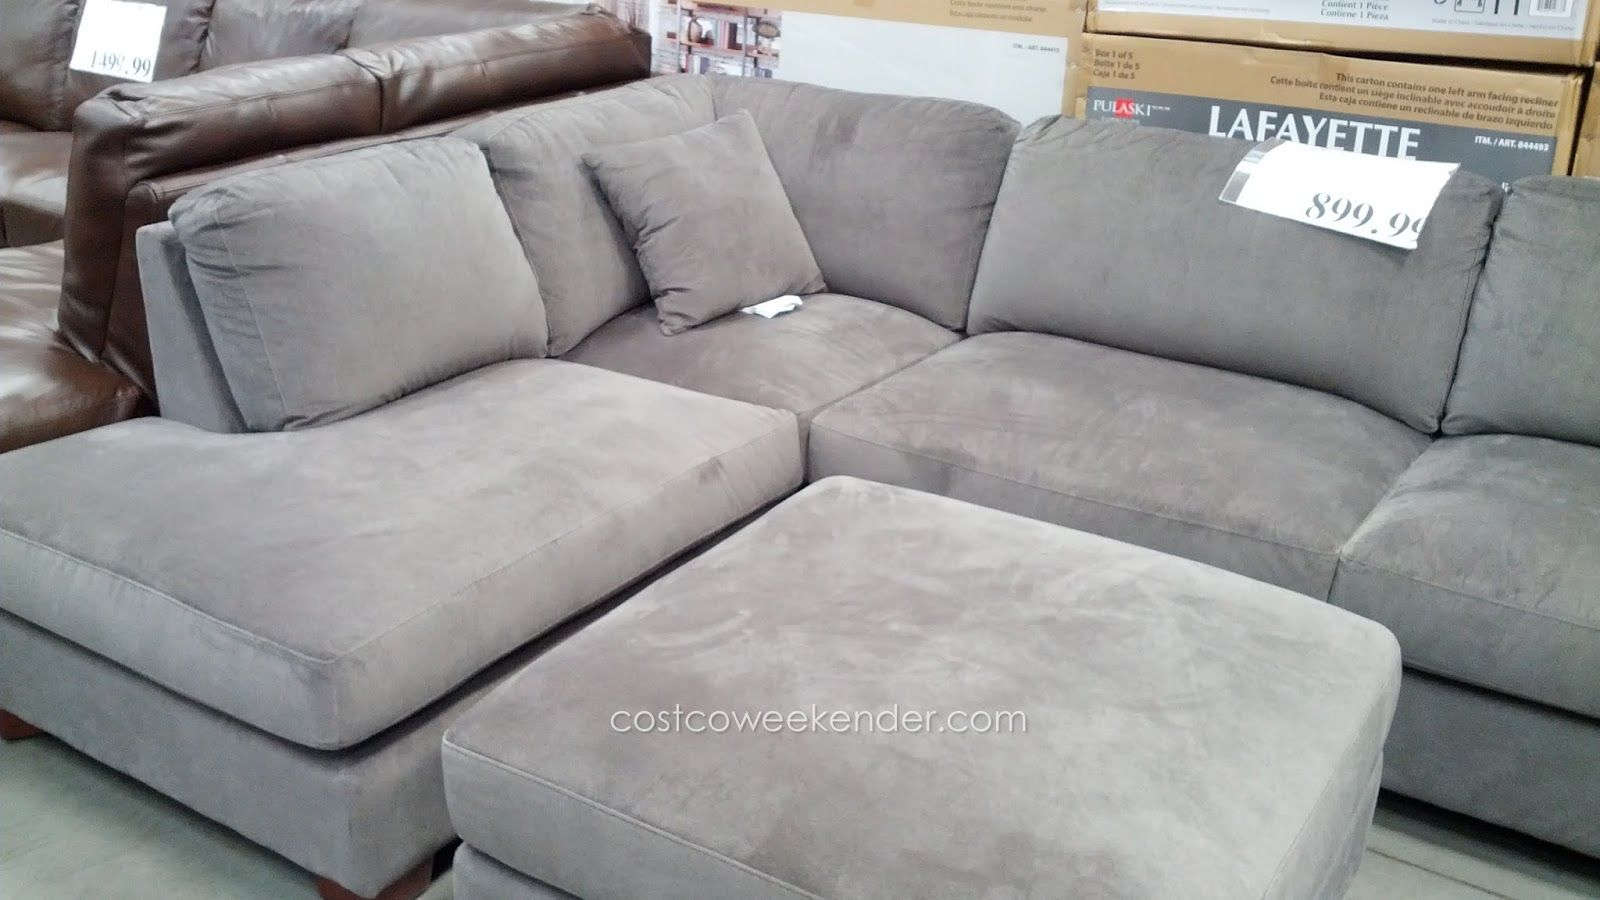 Emerald Home Furnishings Bianca 3 Piece Sectional Set Costco Leather Living Room Set Grey Sectional Sofa Sectional Sofa